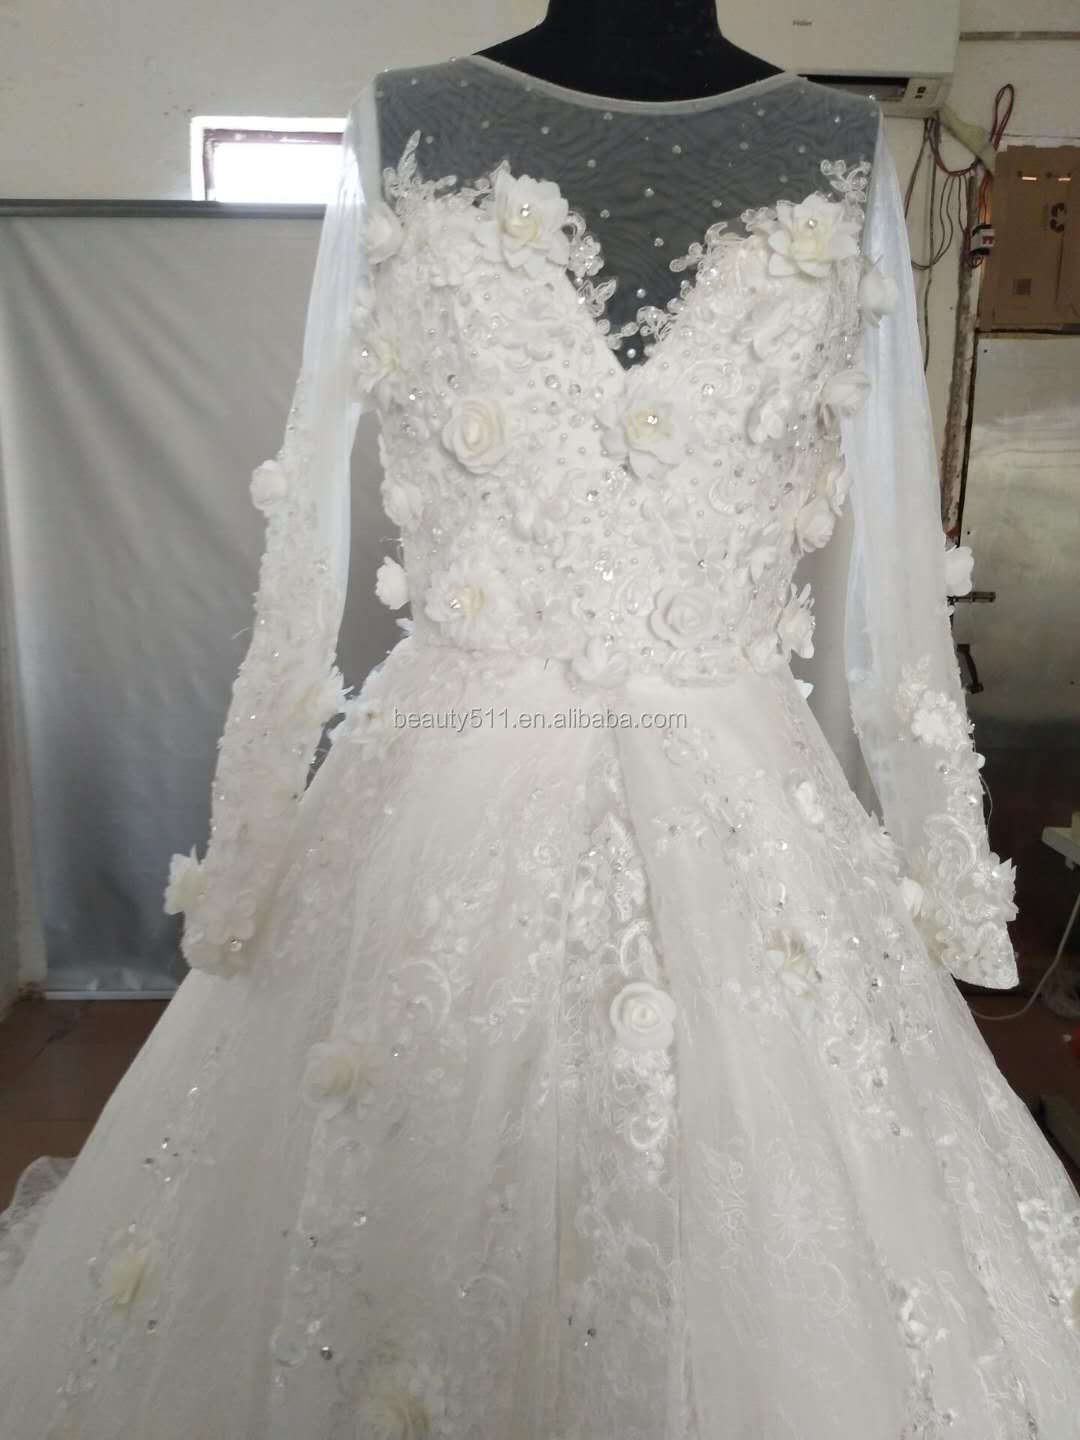 2018 Beaded Appliques Sweetheart long Train Lace Trumpet Wedding gown 3D flowers Long Sleeves wedding dresses